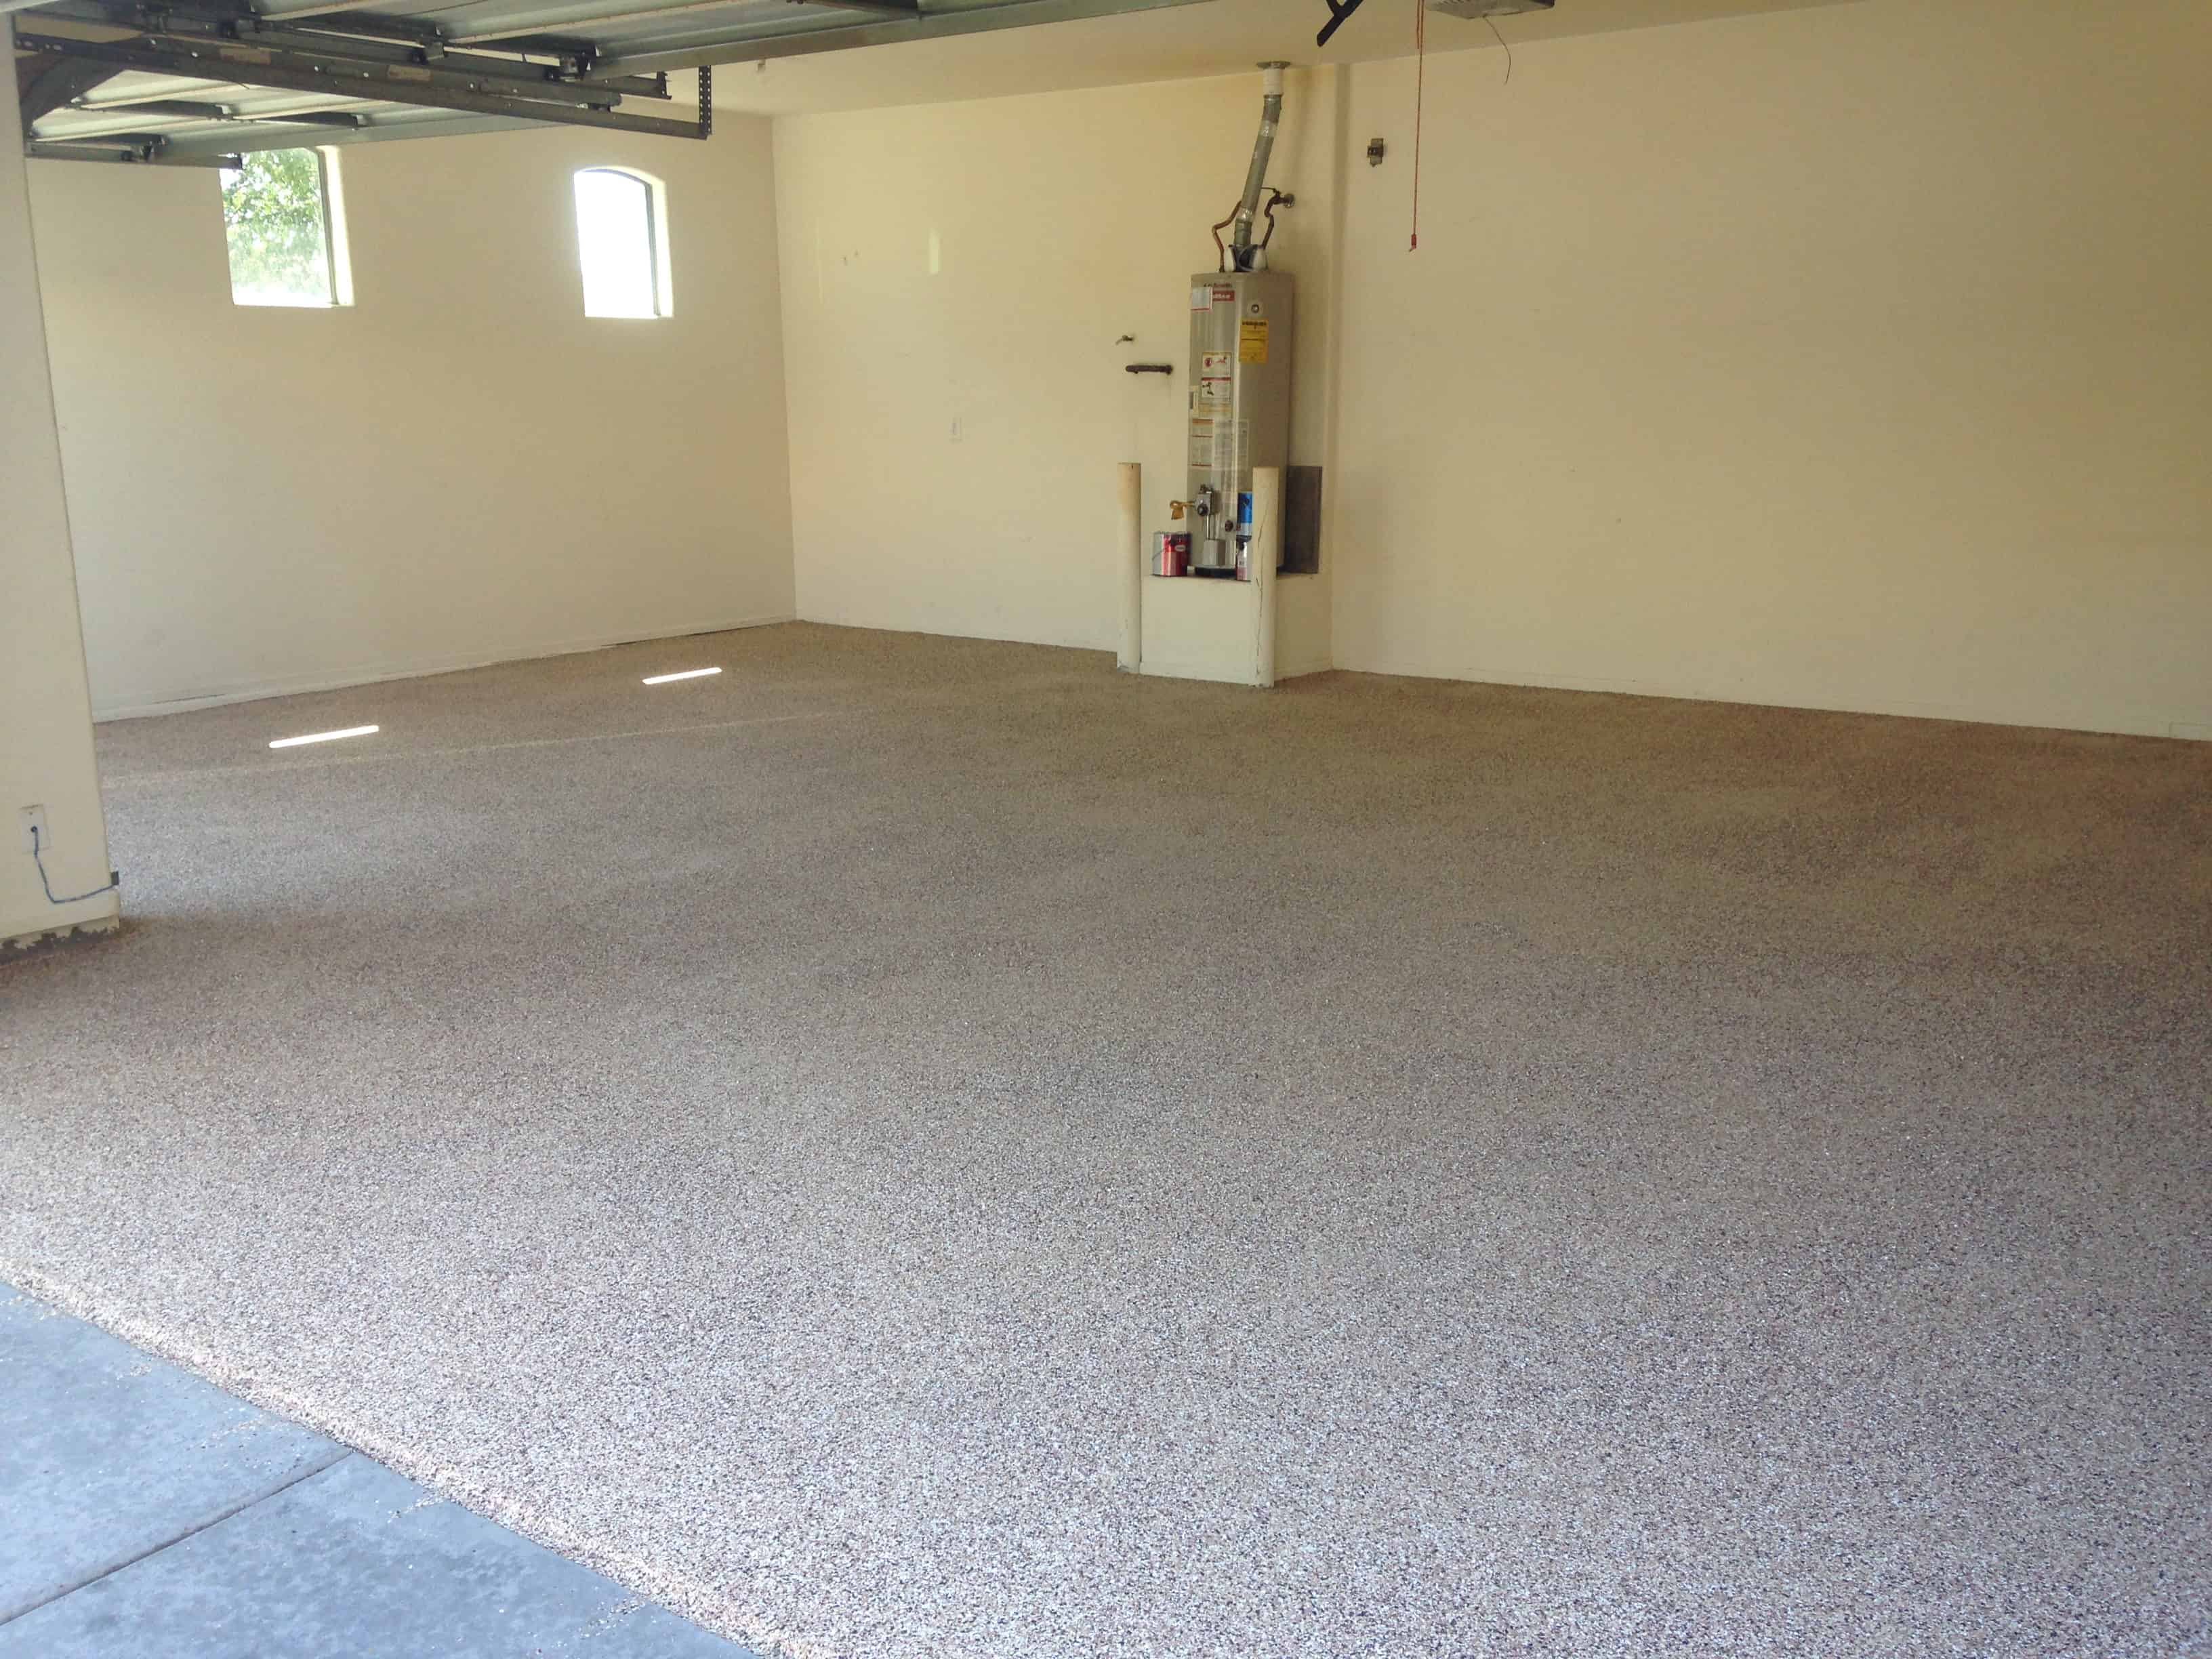 Best garage epoxy coating carefree stone 602 867 0867 for Garage floor maintenance